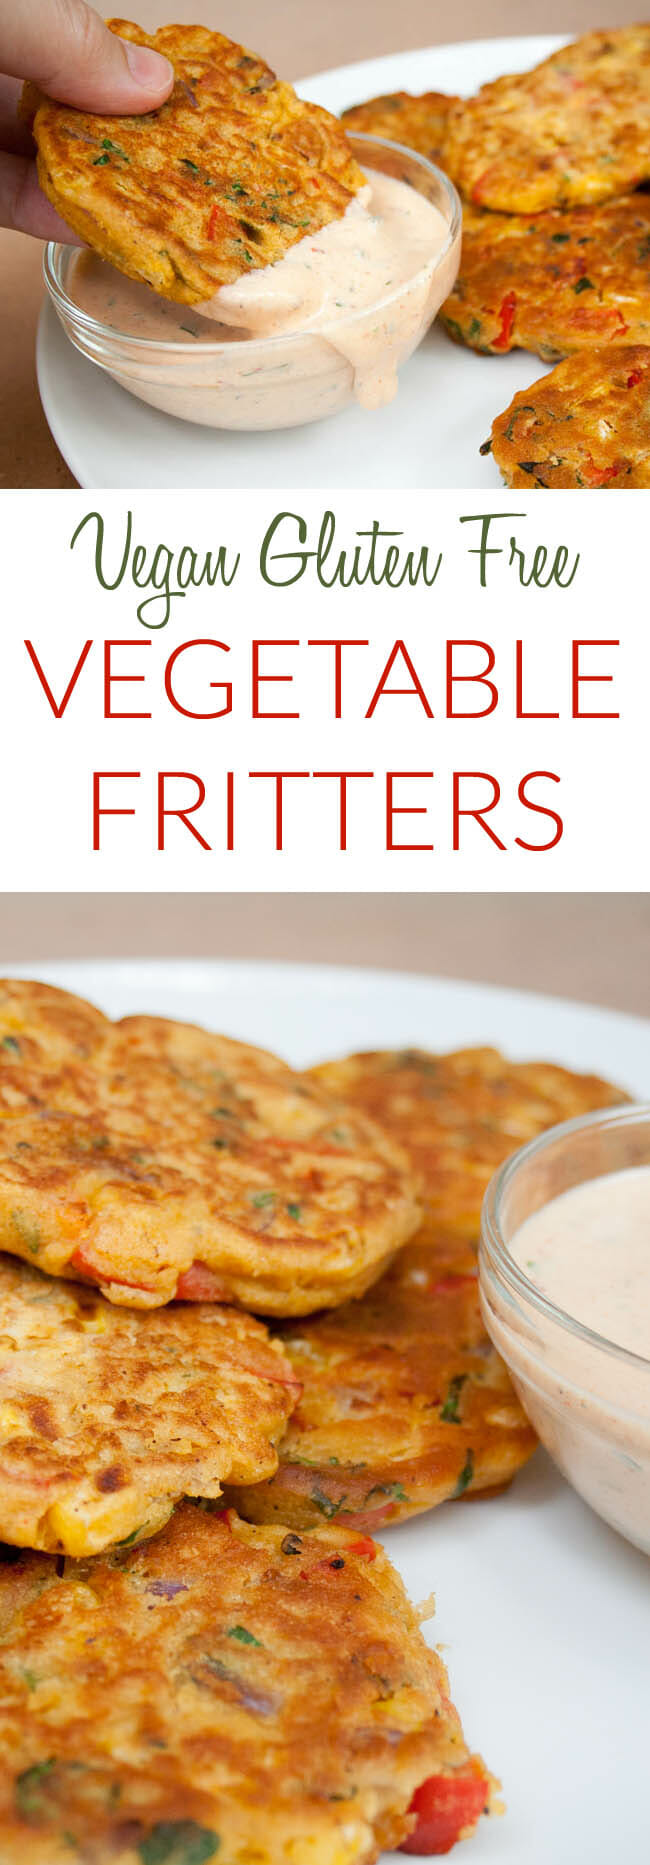 Vegetable Fritters collage photo with text.